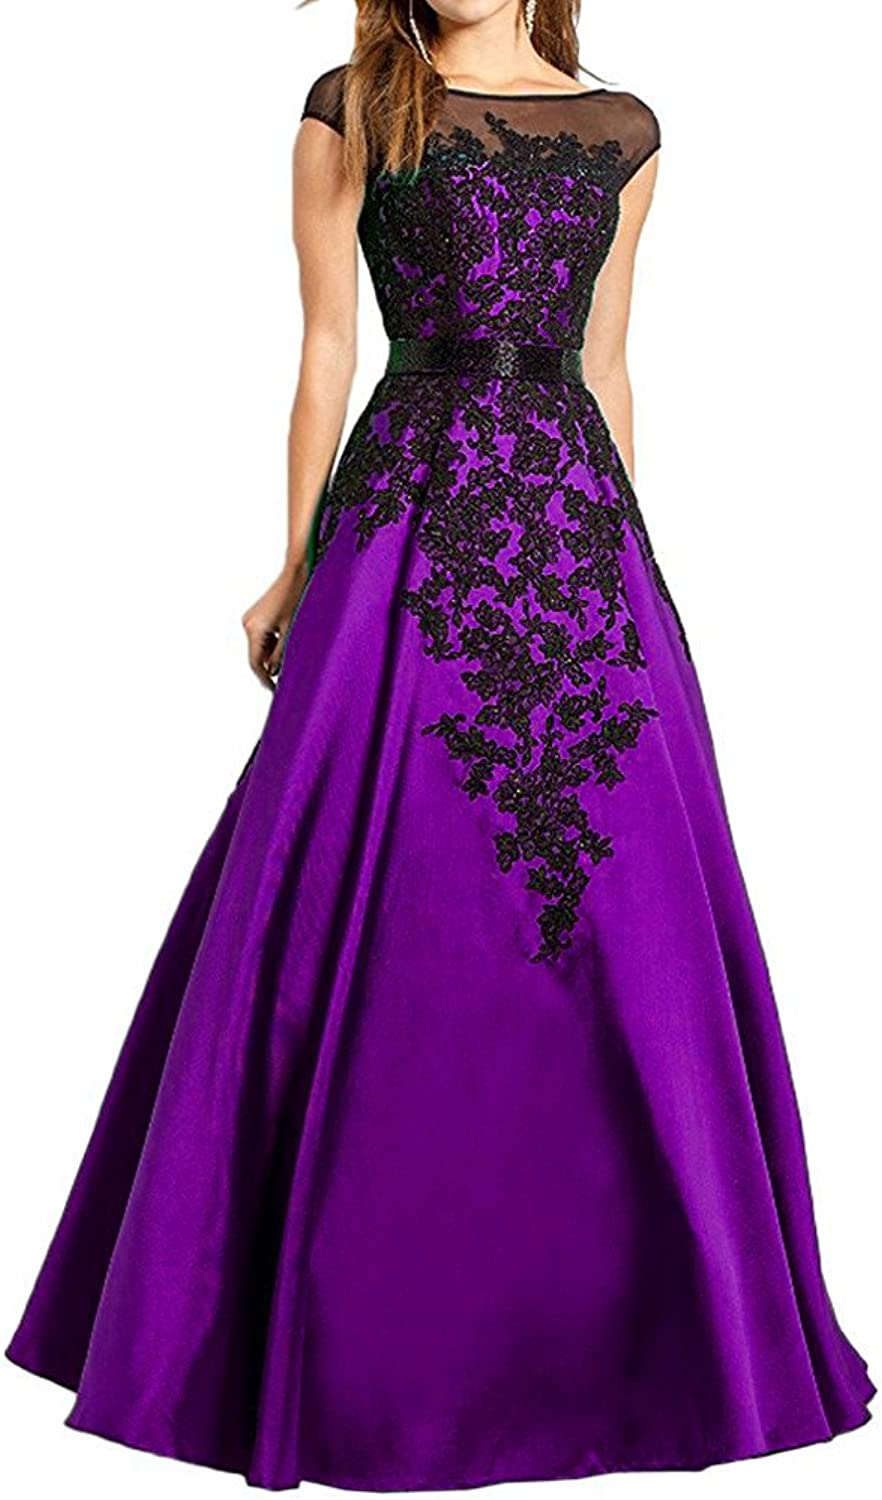 JQLD High Neck Lace Applique Mother of The Bride Dresses Sexy Backless Formal Evening Gown with Sash